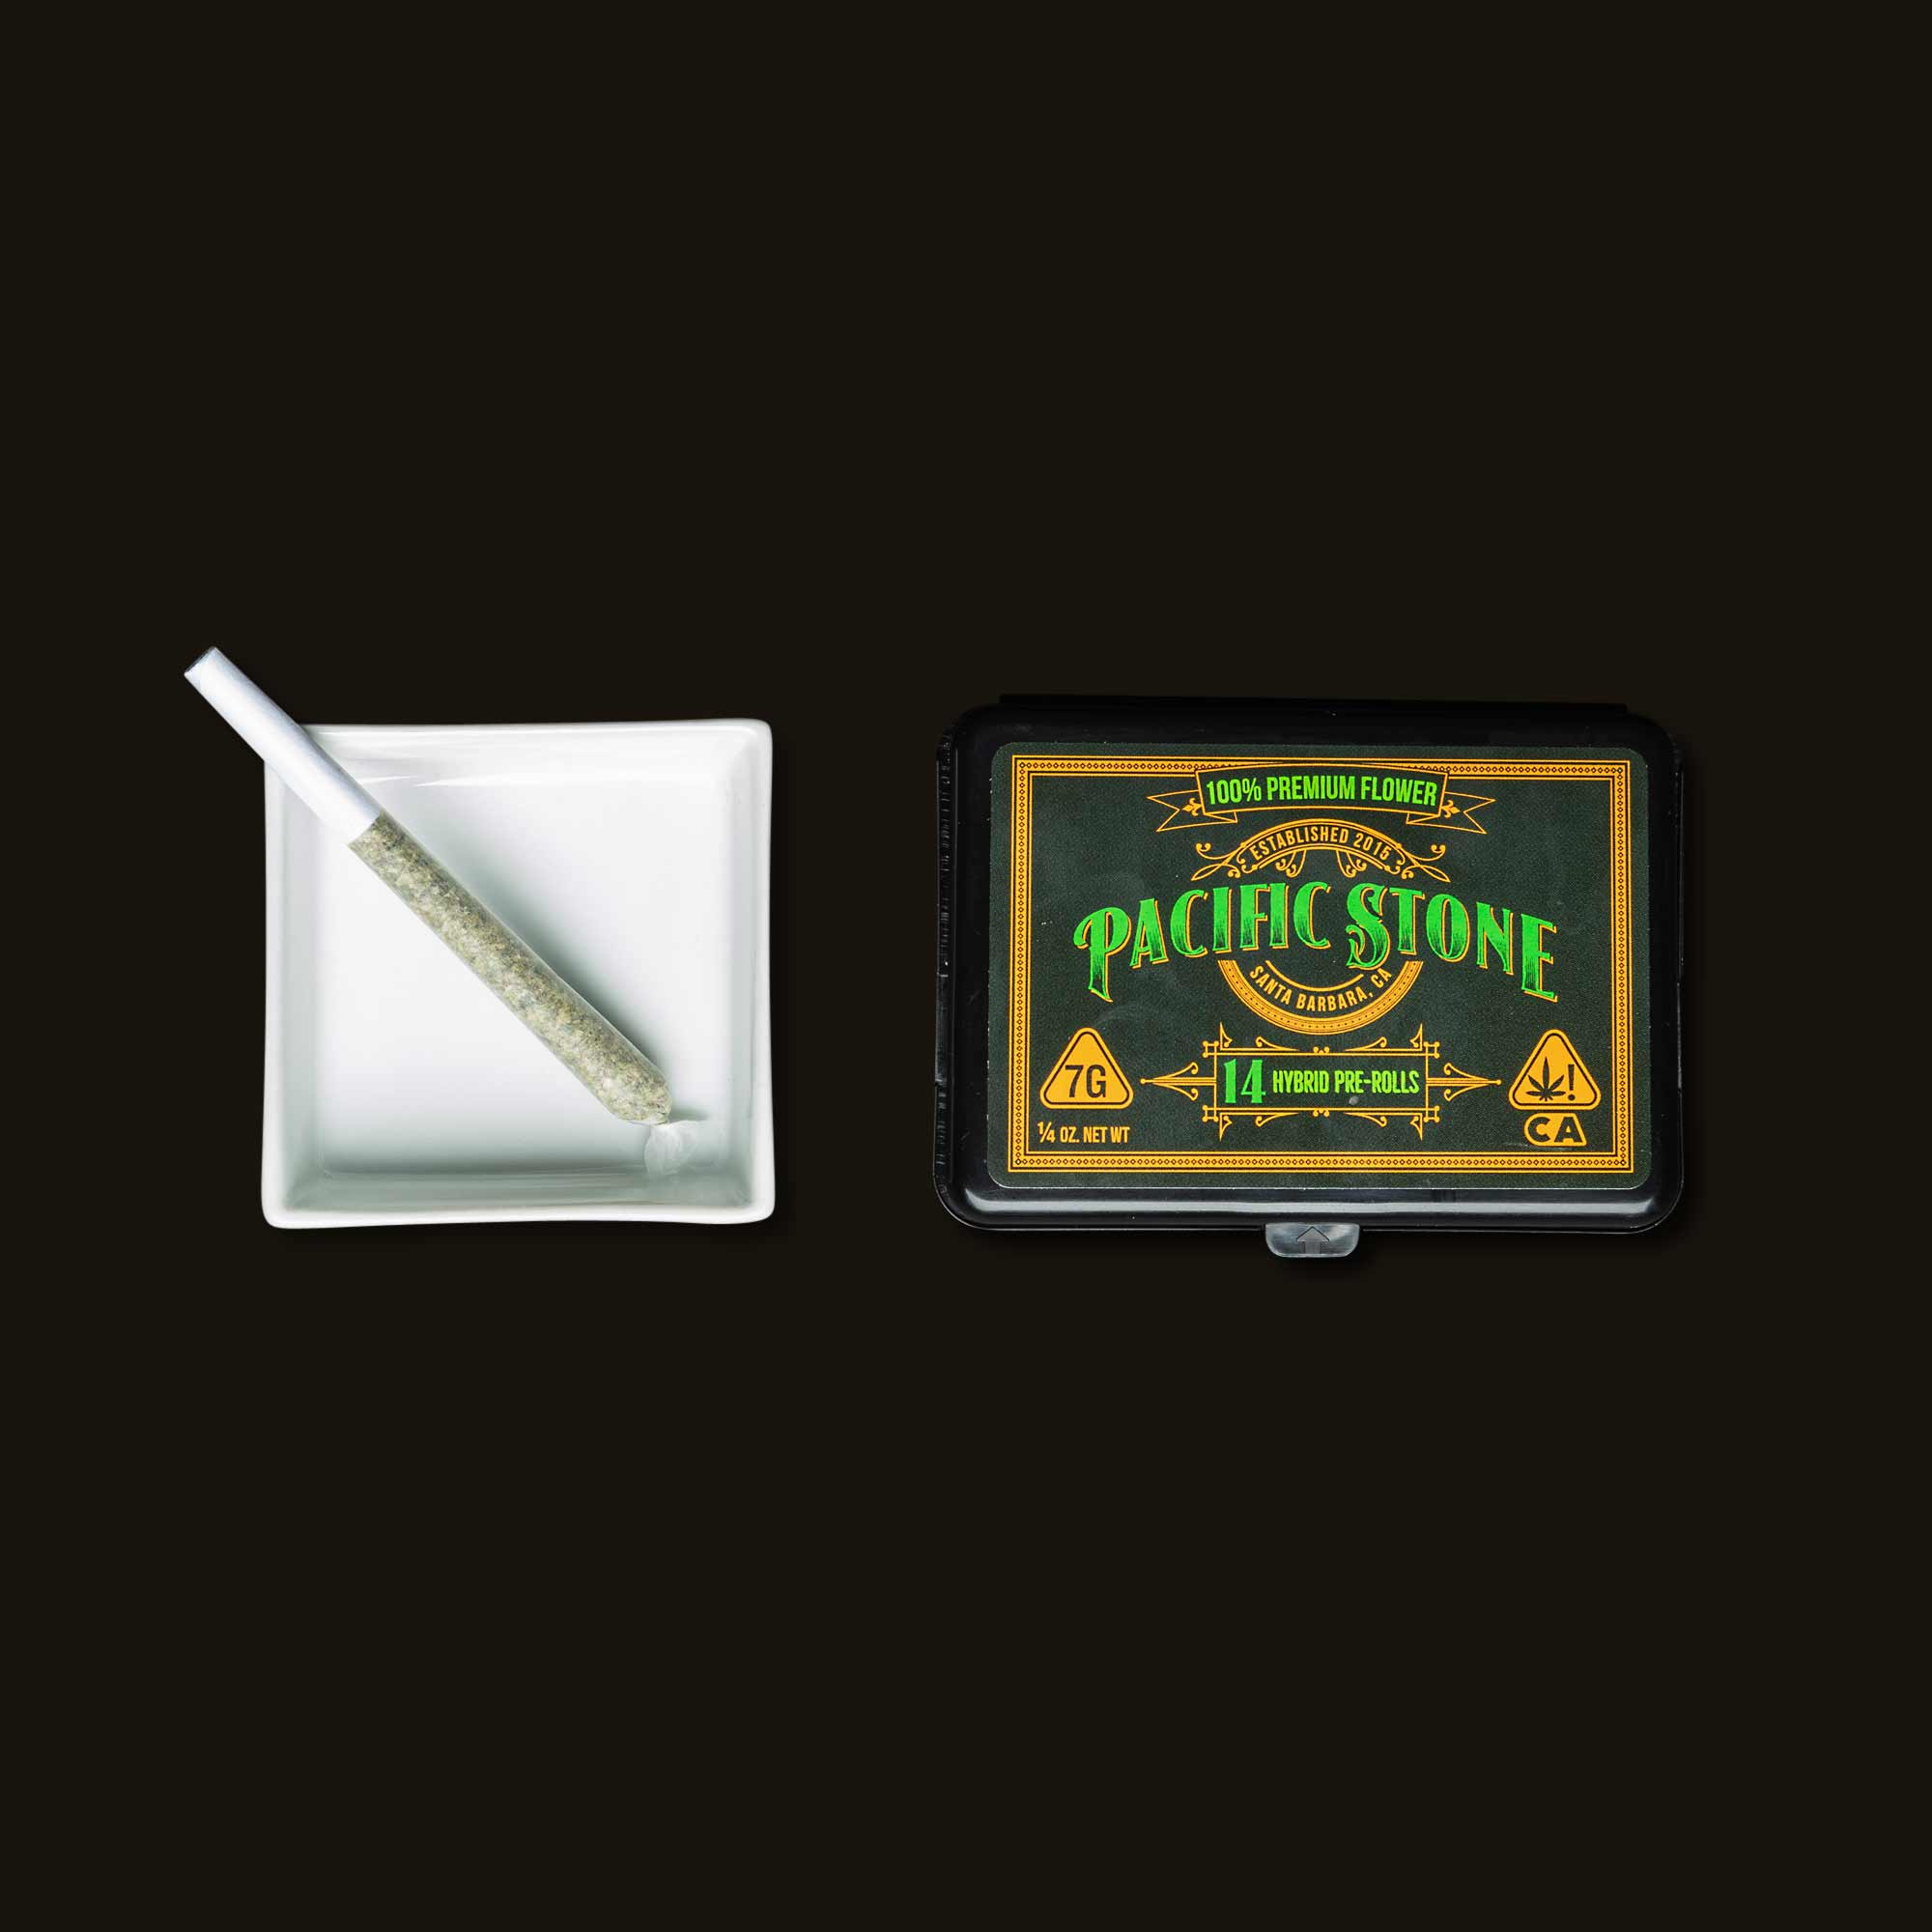 Pacific Stone Hybrid Pre-Roll Pack